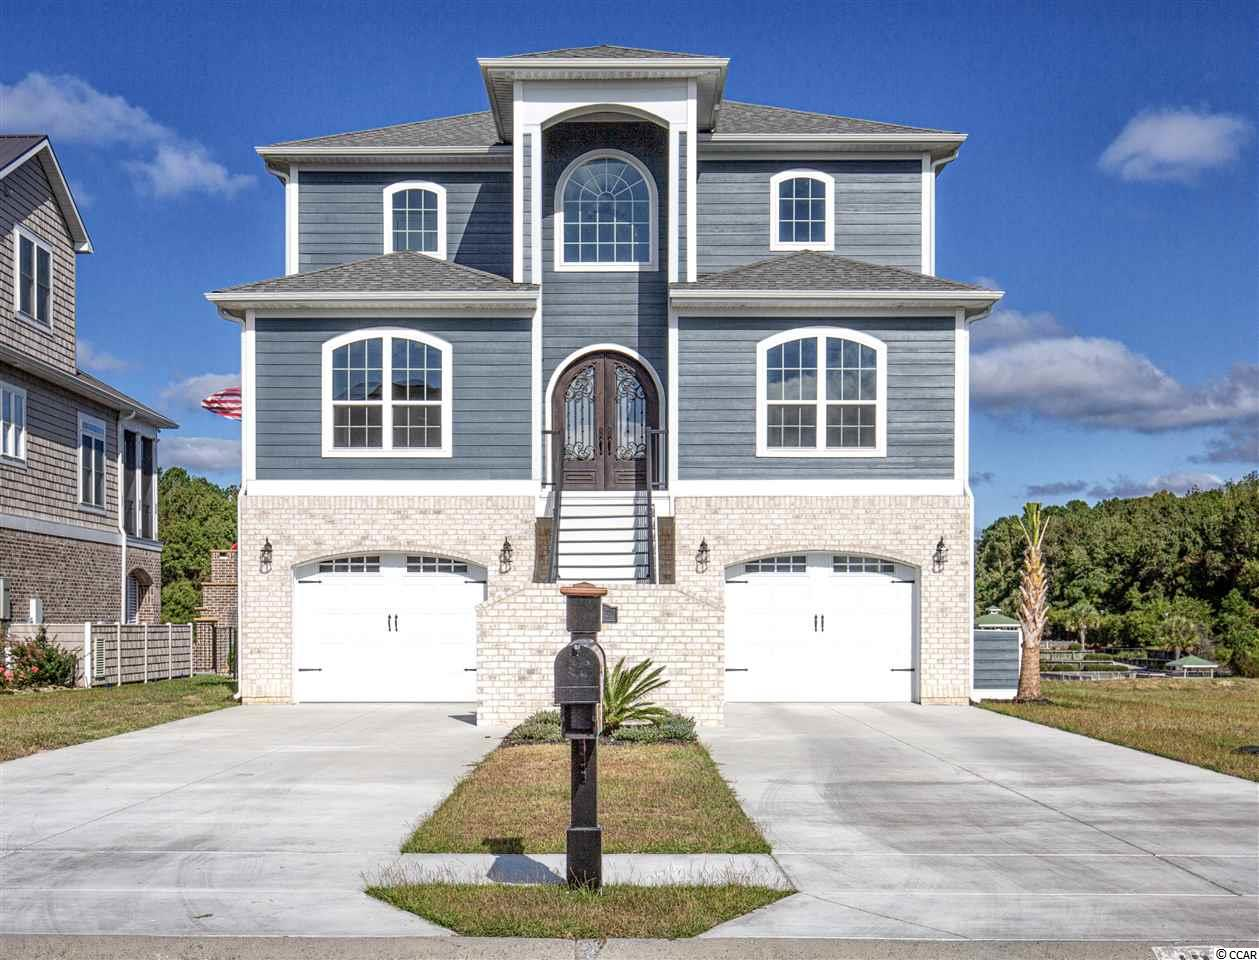 Immaculate like new 5 bedroom 3.5 bath home on the Intracoastal Waterway, just completed in May of 2019! This stunning home sits on the largest lot in the community and has all the bells and whistles; it is a SmartHouse and EcoHouse! Some of the amazing and practical features of this home include a security system, Hurricane windows/doors rated for 250 mph winds, 2 tankless hot water heaters, ceiling fans in every bedroom, granite countertops in all the bathrooms, waterproof engineered hardwood flooring throughout the entire house, and Timbertech Azek composite decking on the porches that has a limited lifetime warranty! The front steps take you up to the second floor, which is the main floor, where you are greeted by the exquisite wooden and wrought iron detailed front door imported from Italy! Once inside the cozy foyer you will notice the charming floor to ceiling wainscoting inviting you in. The open concept living and kitchen are flooded with natural light from the 3 sets of double glass doors that lead out to the porch overlooking the waterway. The living room features an elaborate diamond coffered ceiling, built-ins, and a 84in electric fireplace! The dining area is adjacent to the living room and has a tray ceiling. The gorgeous kitchen boasts white and grey marbled granite countertops, stainless steel appliances, beautiful pendant lights, a work island with seating, and a large walk-in pantry! On the main floor there are 2 bedrooms, a full bath, a powder room, and the laundry room. Upstairs on the third floor is the master suite as well as 2 more bedrooms and an additional full bath. One of the bedrooms on this floor is currently being used as an office and features lovely wainscoting trim. In the fabulous master bedroom you will find a coffered ceiling, a 60in electric fireplace, and 2 sets of french doors leading out to the 3rd floor porch also overlooking the waterway! The luxurious master ensuite has double sinks, a linen closet, a water closet, a 6ft free standing garden tub, and a lavish marble shower with 2 shower heads and a bench! The master suite also offers a dreamy and massive walk-in closet with built-in shelving & storage system! Down on the first floor is a partially finished very spacious room that could be a mother-in-law suite, a pool house, or a recreation room your choice! There is also an oversized 26ft long, 2 car garage with a golf cart garage! Outside brick archways lead you out to the concrete patio surrounding the 25x12 salt water pool with overflow hot tub! The pool is heated and cooled so you can enjoy it year round! This fenced in backyard will quickly become your favorite place to be with breathtaking views of the waterway, plenty of space to relax and grill plus this is even an outdoor TV! This lot also comes with a dock and boat lift permit included saving you money and time so you can build it to suite your taste and boat size! This magnificent house is located in Palmetto Harbor in North Myrtle Beach, close to popular spots like Barefoot Landing and Tanger Outlets and is less than 10 minutes from the beach!! Don't miss the opportunity to own this dream home, schedule your showing today!